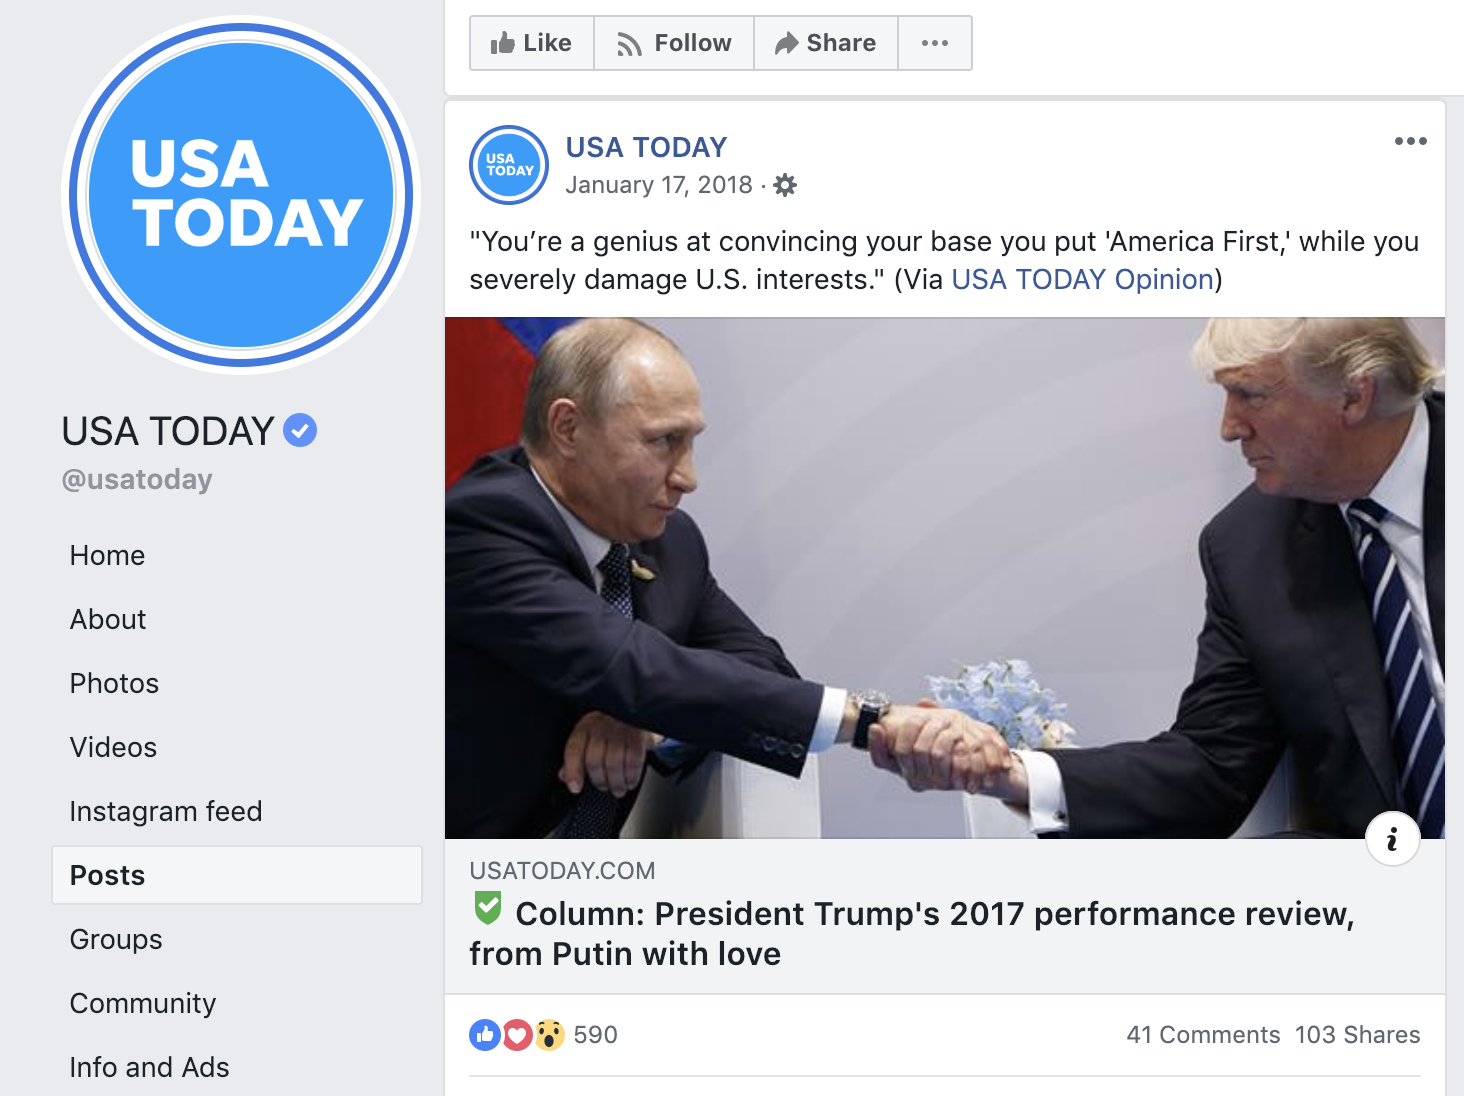 Labeling Opinion Content on Facebook – Trusting News